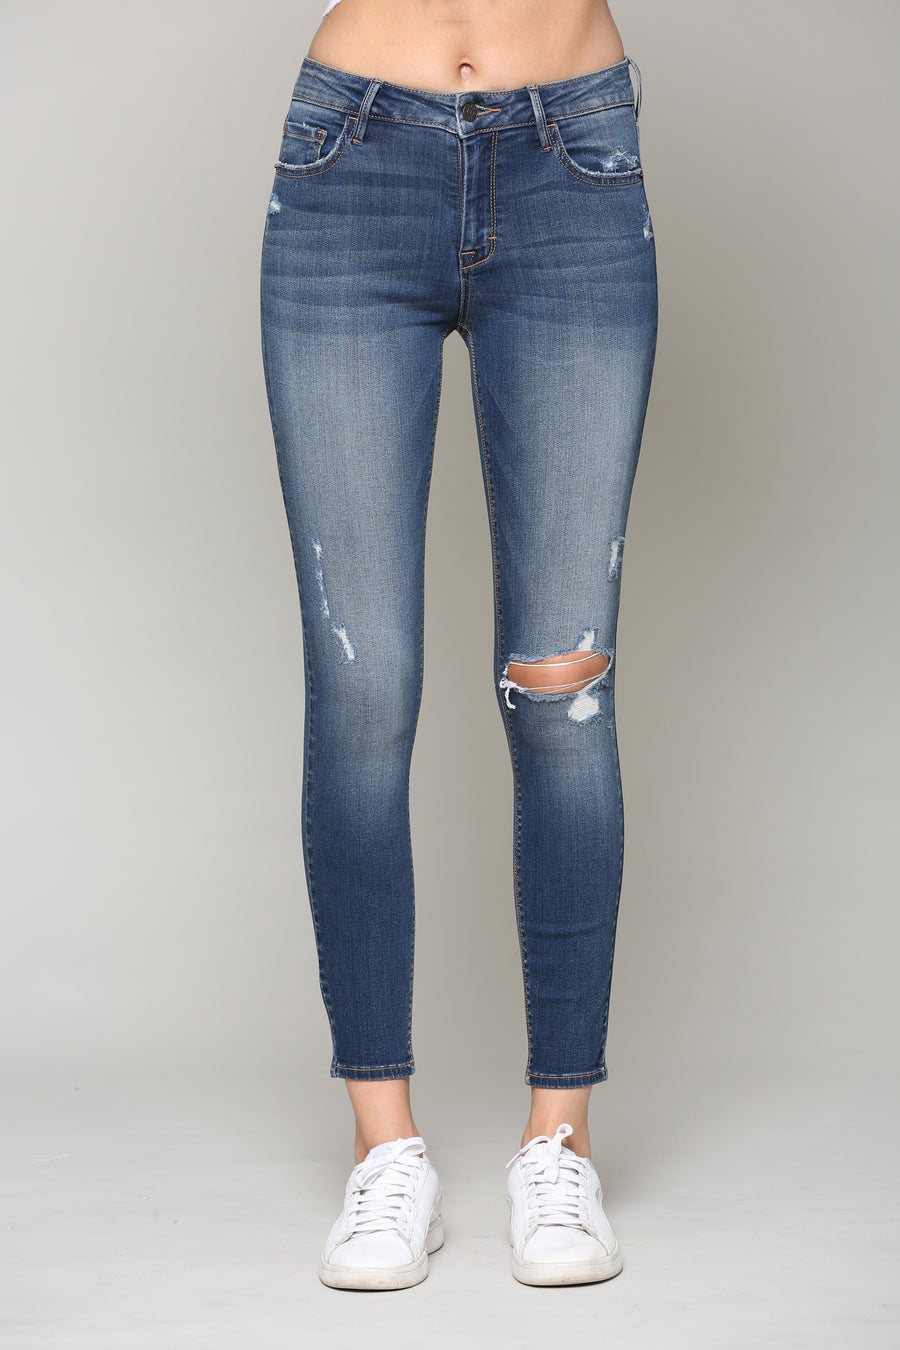 AMELIA <p/> DARK WASH SKINNY WITH GRINDING